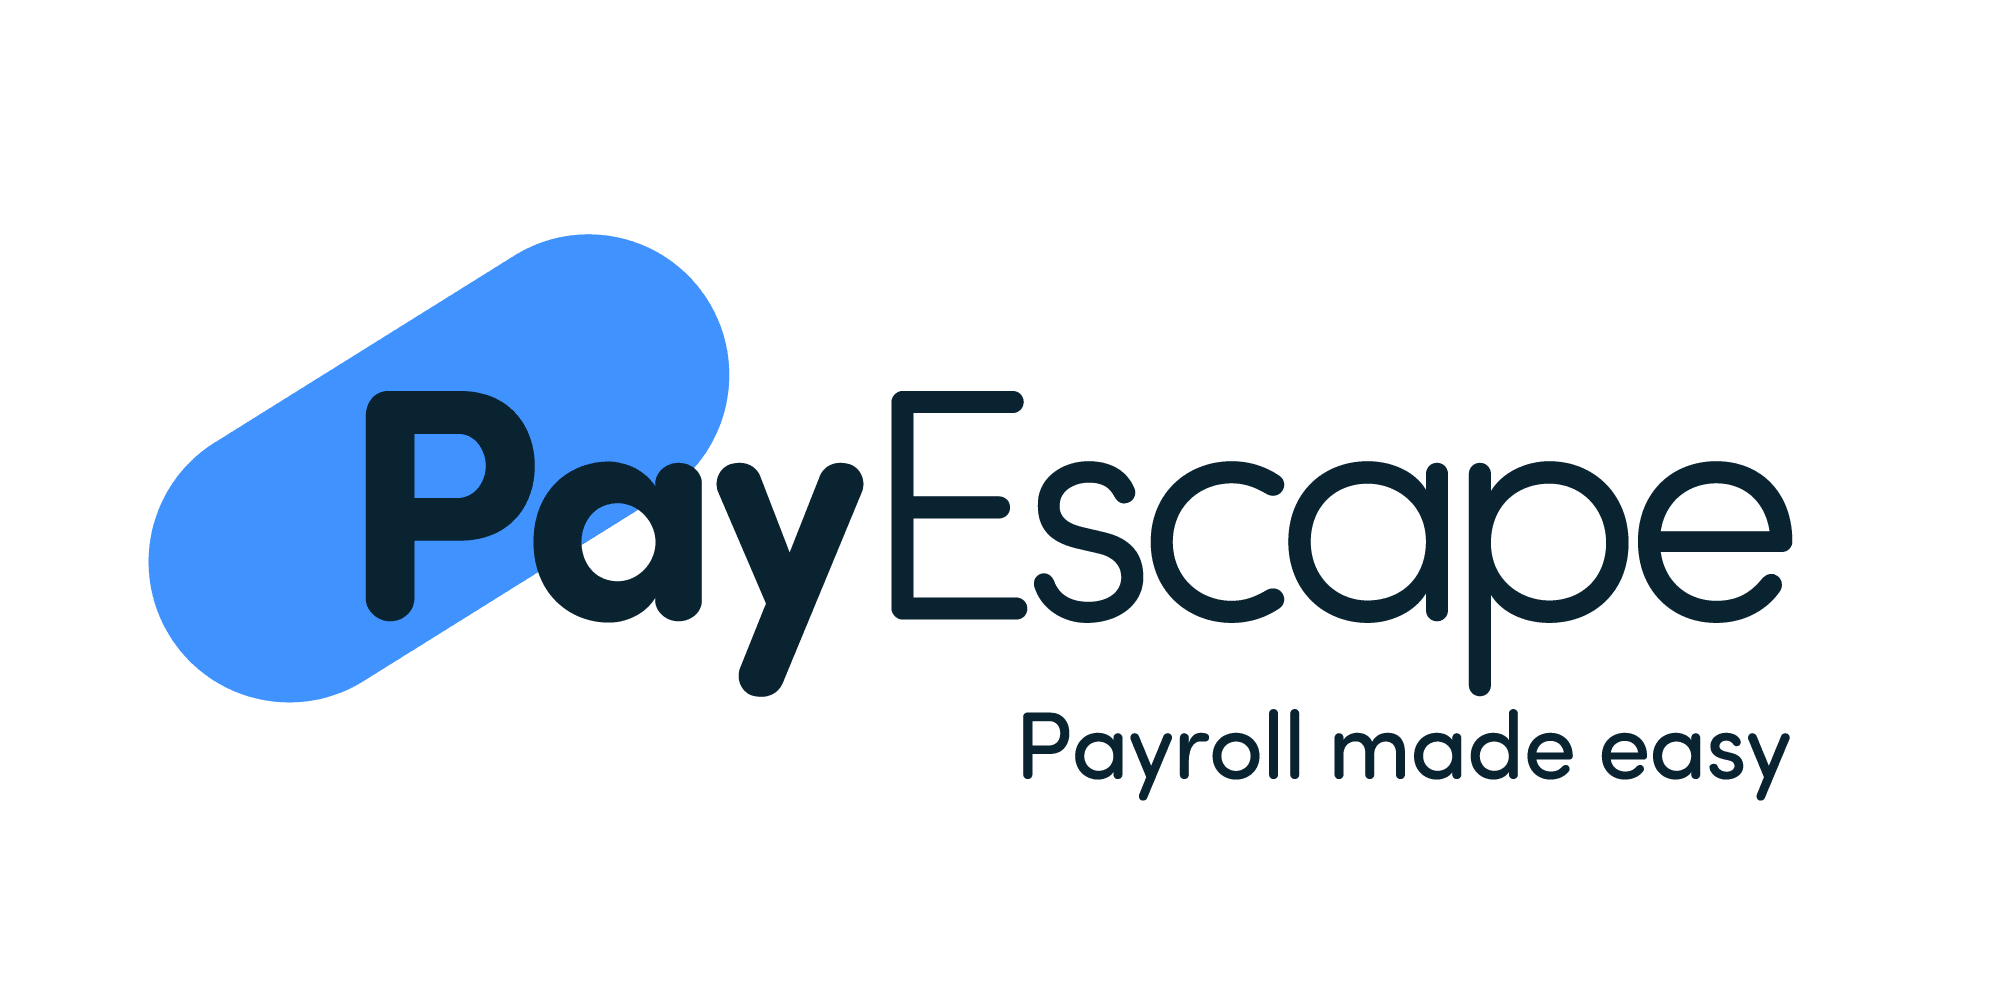 PayEscape - PayEscape_White.png